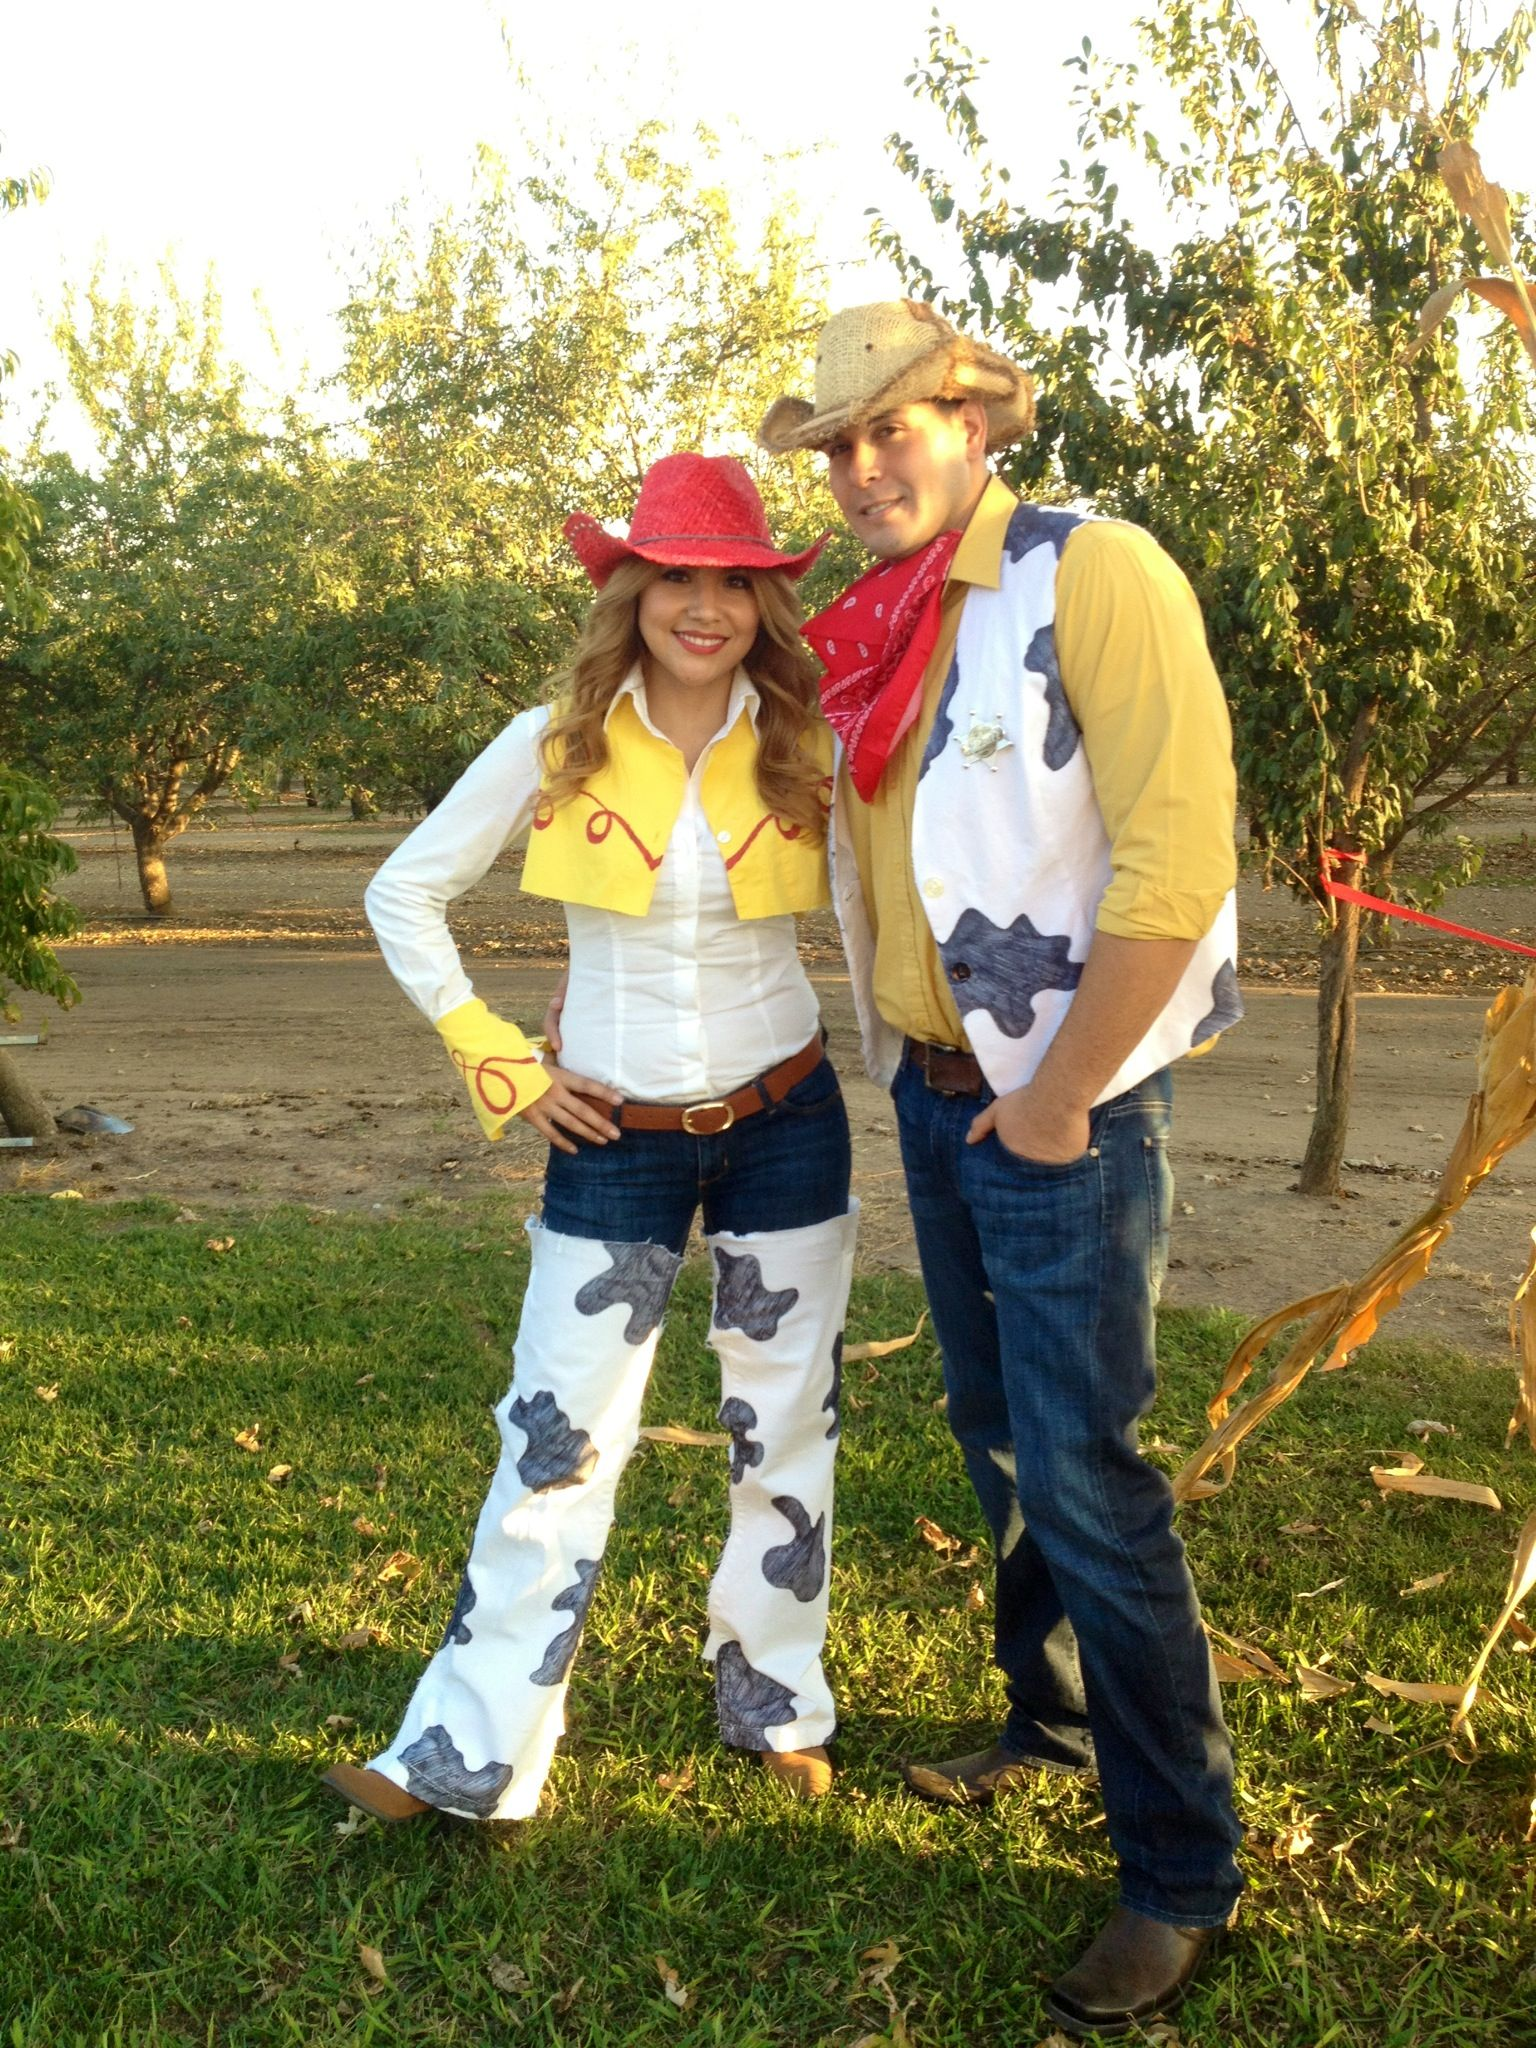 Diy Jessie And Woody Costumes Halloween Costumes Jessie